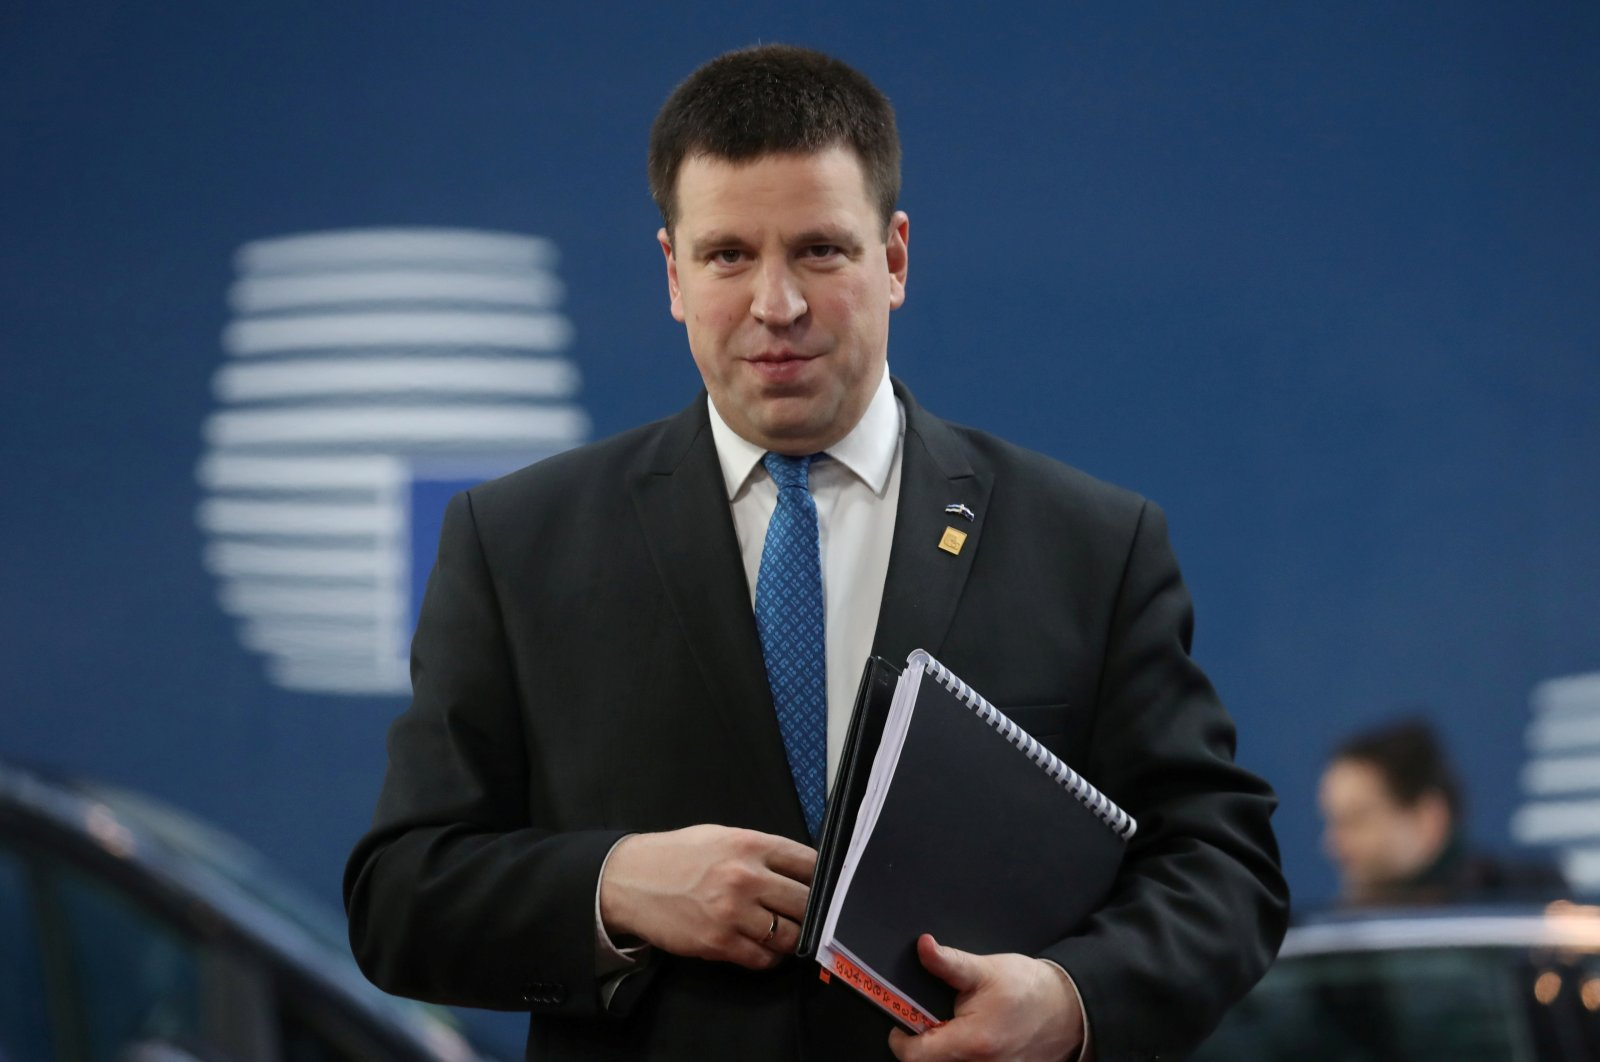 Estonia's Prime Minister Juri Ratas arrives for the second day of the European Union leaders summit, held to discuss the EU's long-term budget for 2021-2027, in Brussels, Belgium, Feb. 21, 2020. (Reuters File Photo)